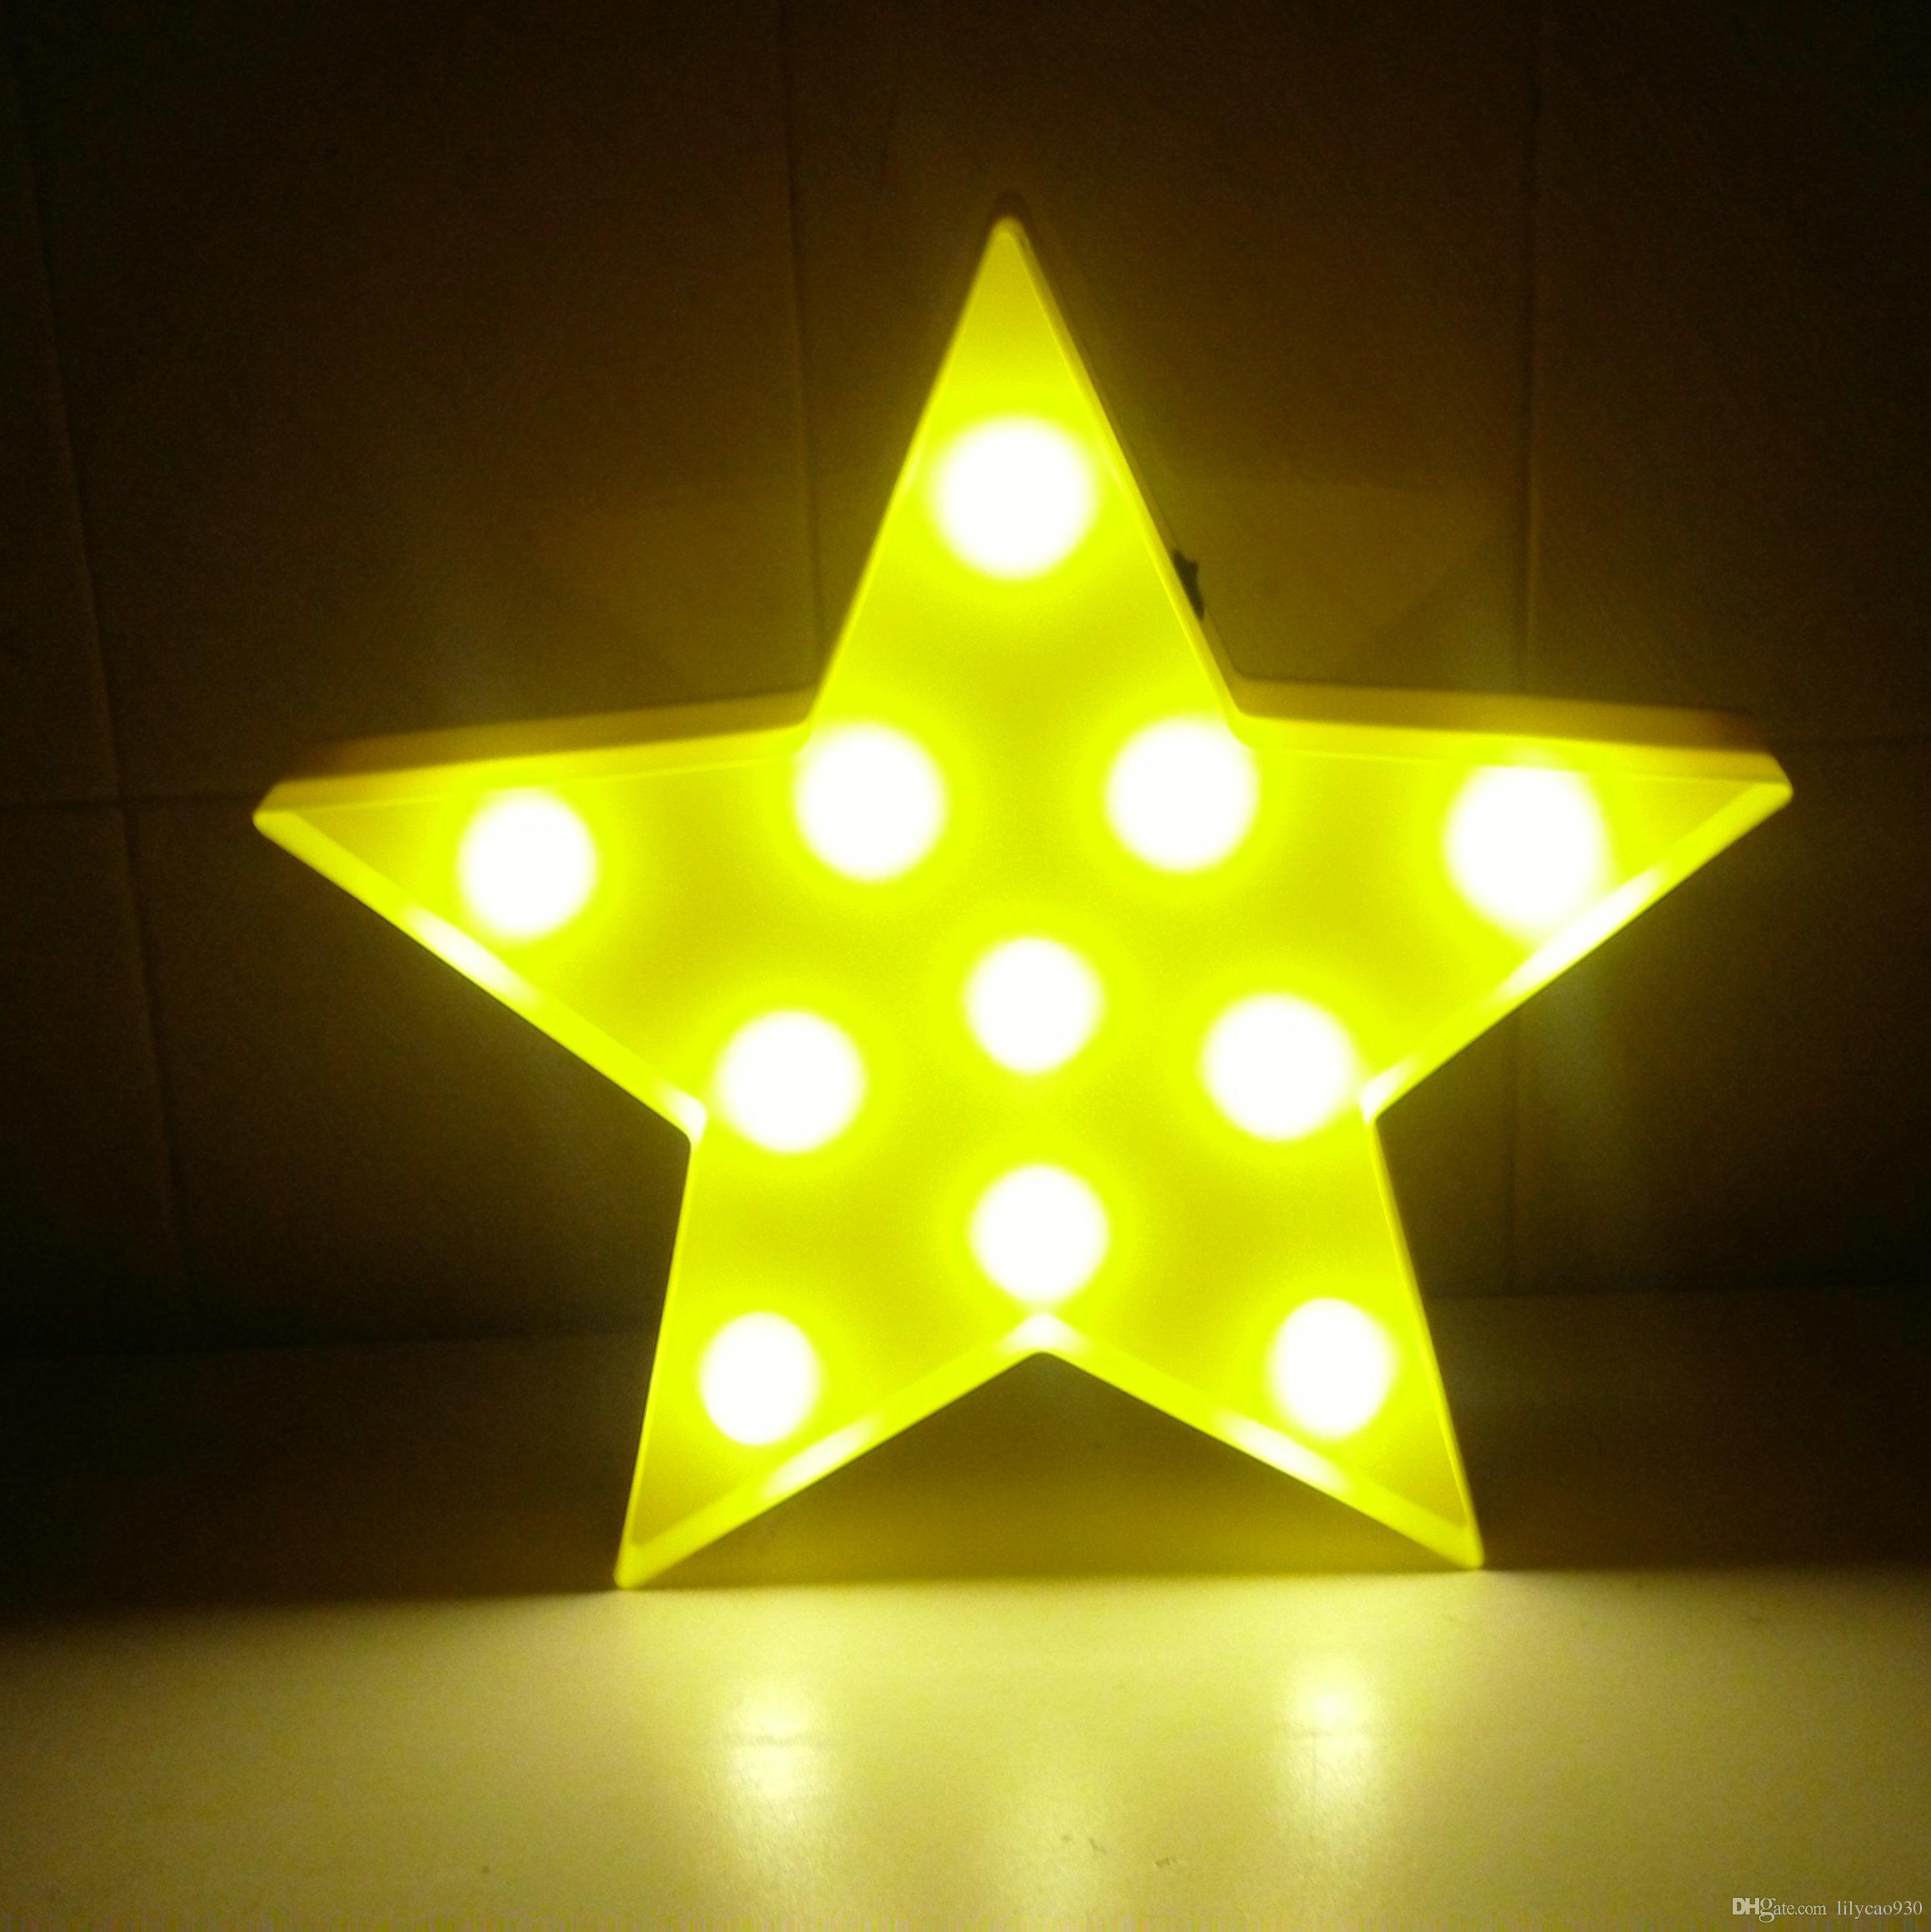 125 plastic star led night light aa battery led marquee sign light up letter signs